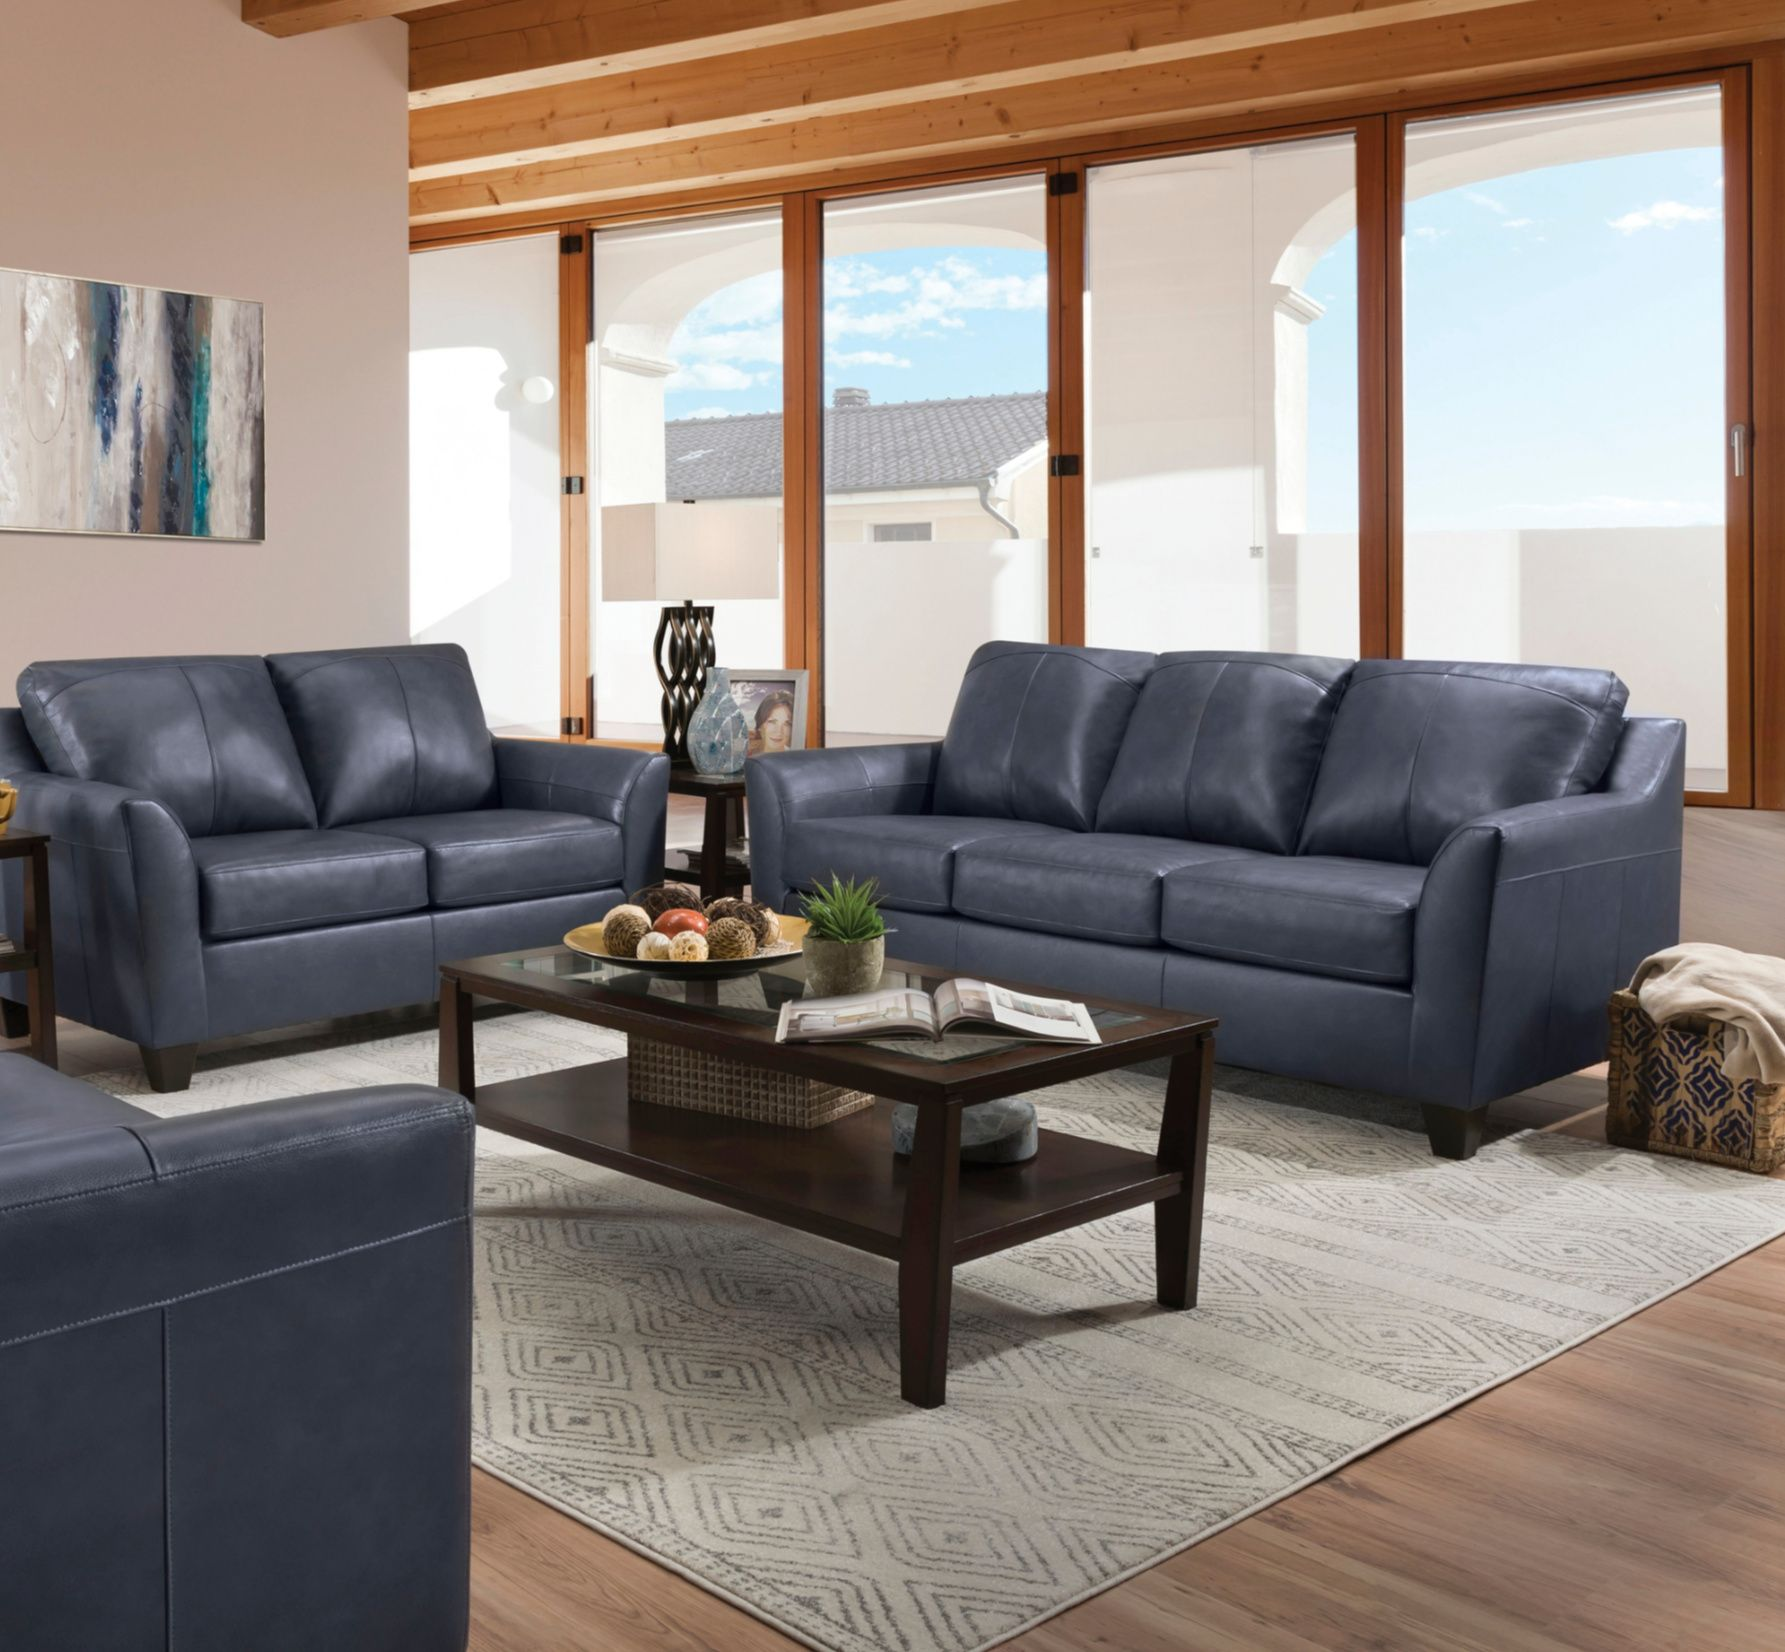 The Deco Leather Sofa Comes In A Gorgeous Shade Of Slate Blue